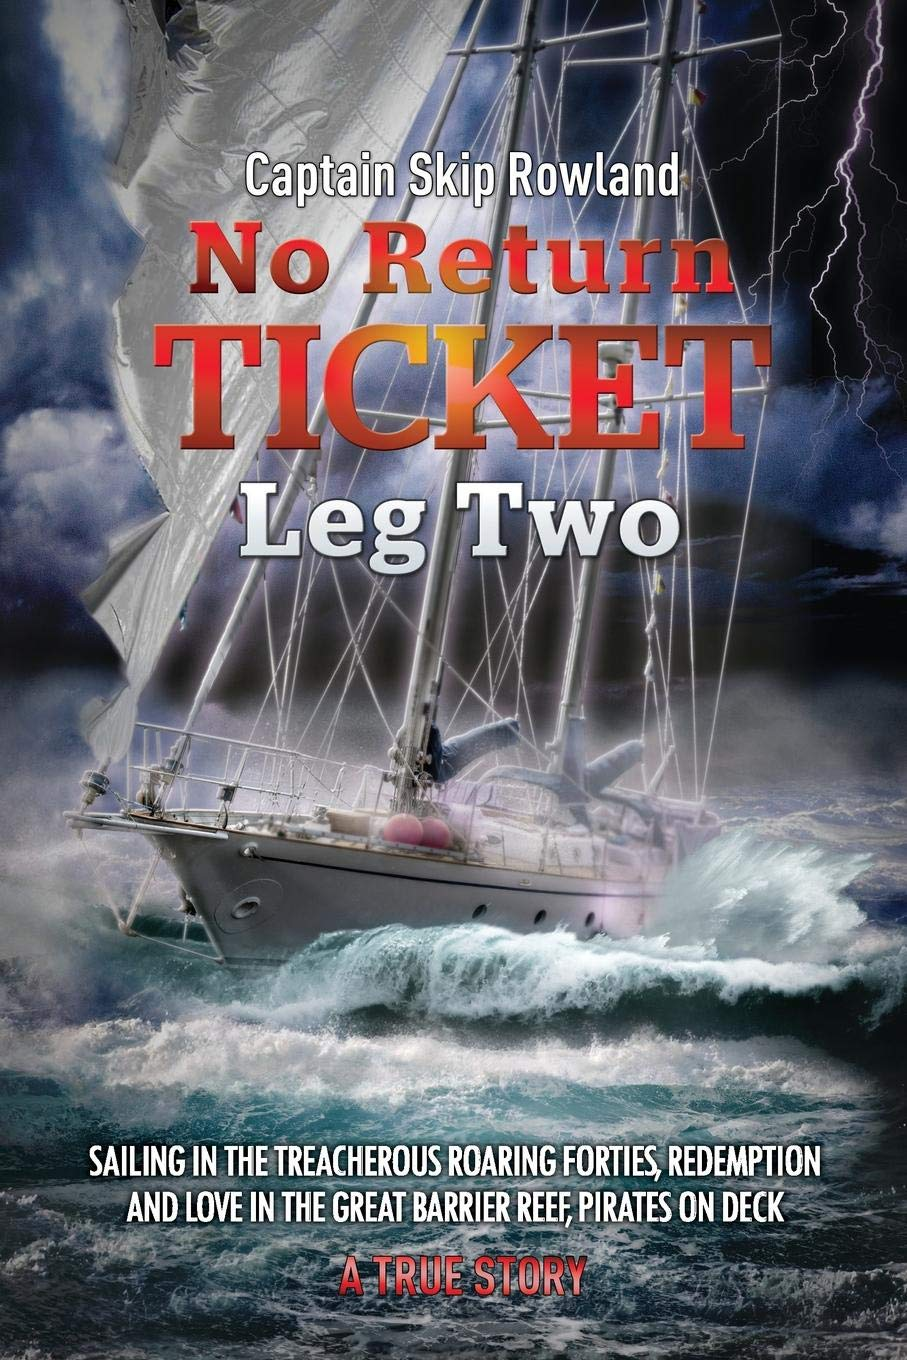 No Return Ticket -- Leg Two: Sailing in the Treacherous Roaring Forties, Redemption and Love in the Great Barrier Reef, Pirates On Deck (Volume 2), Rowland, Captain Skip